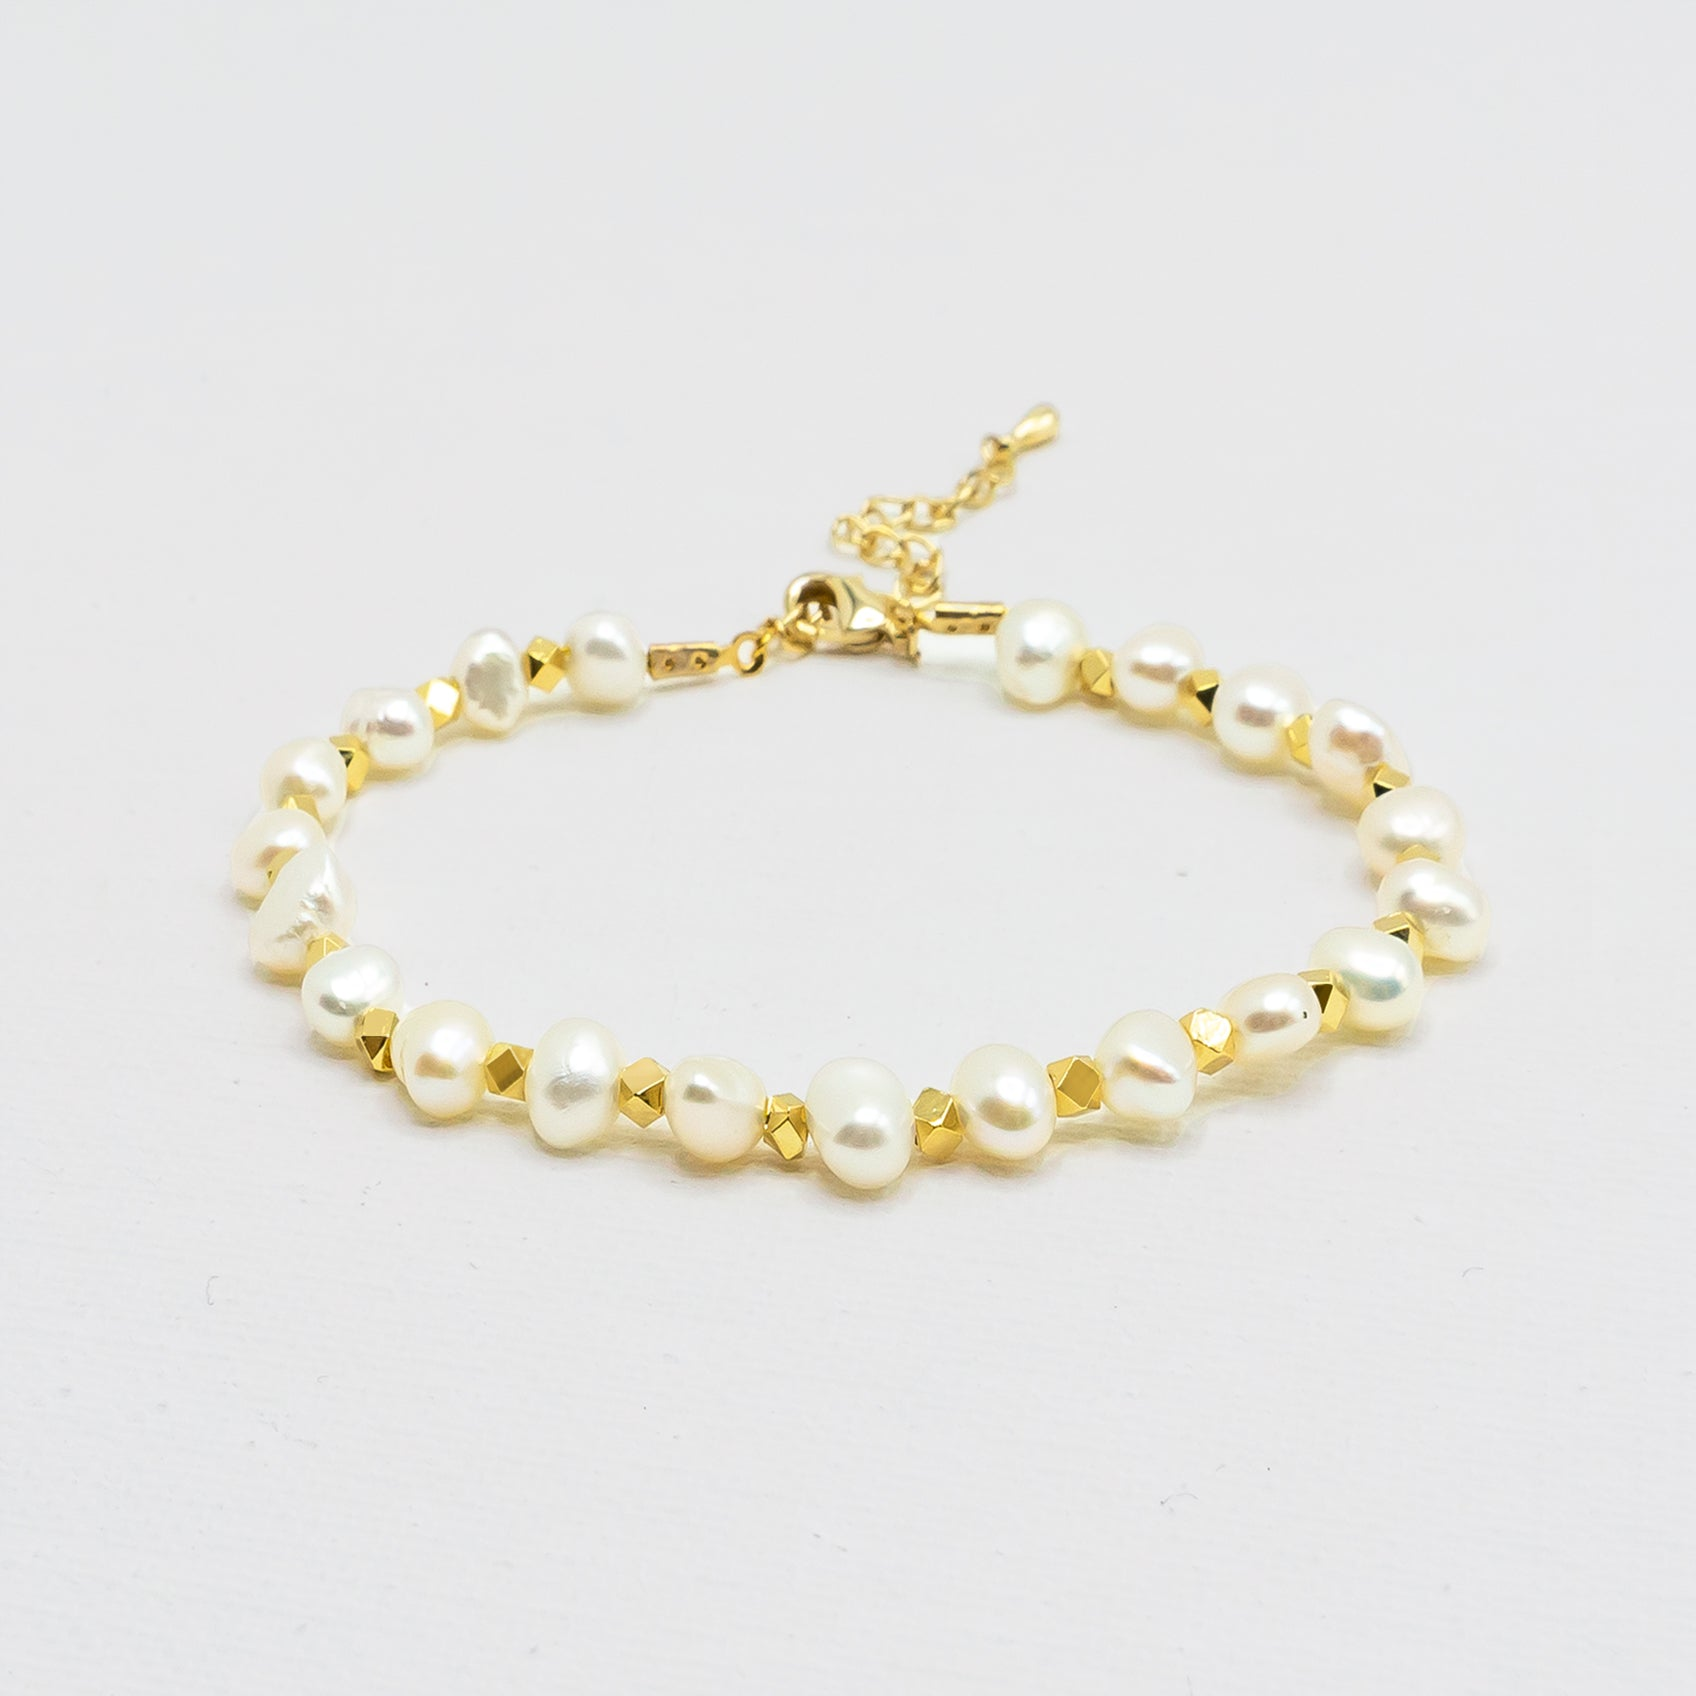 White Pearl Bracelet with Gold Beads - IT STYLE BOX